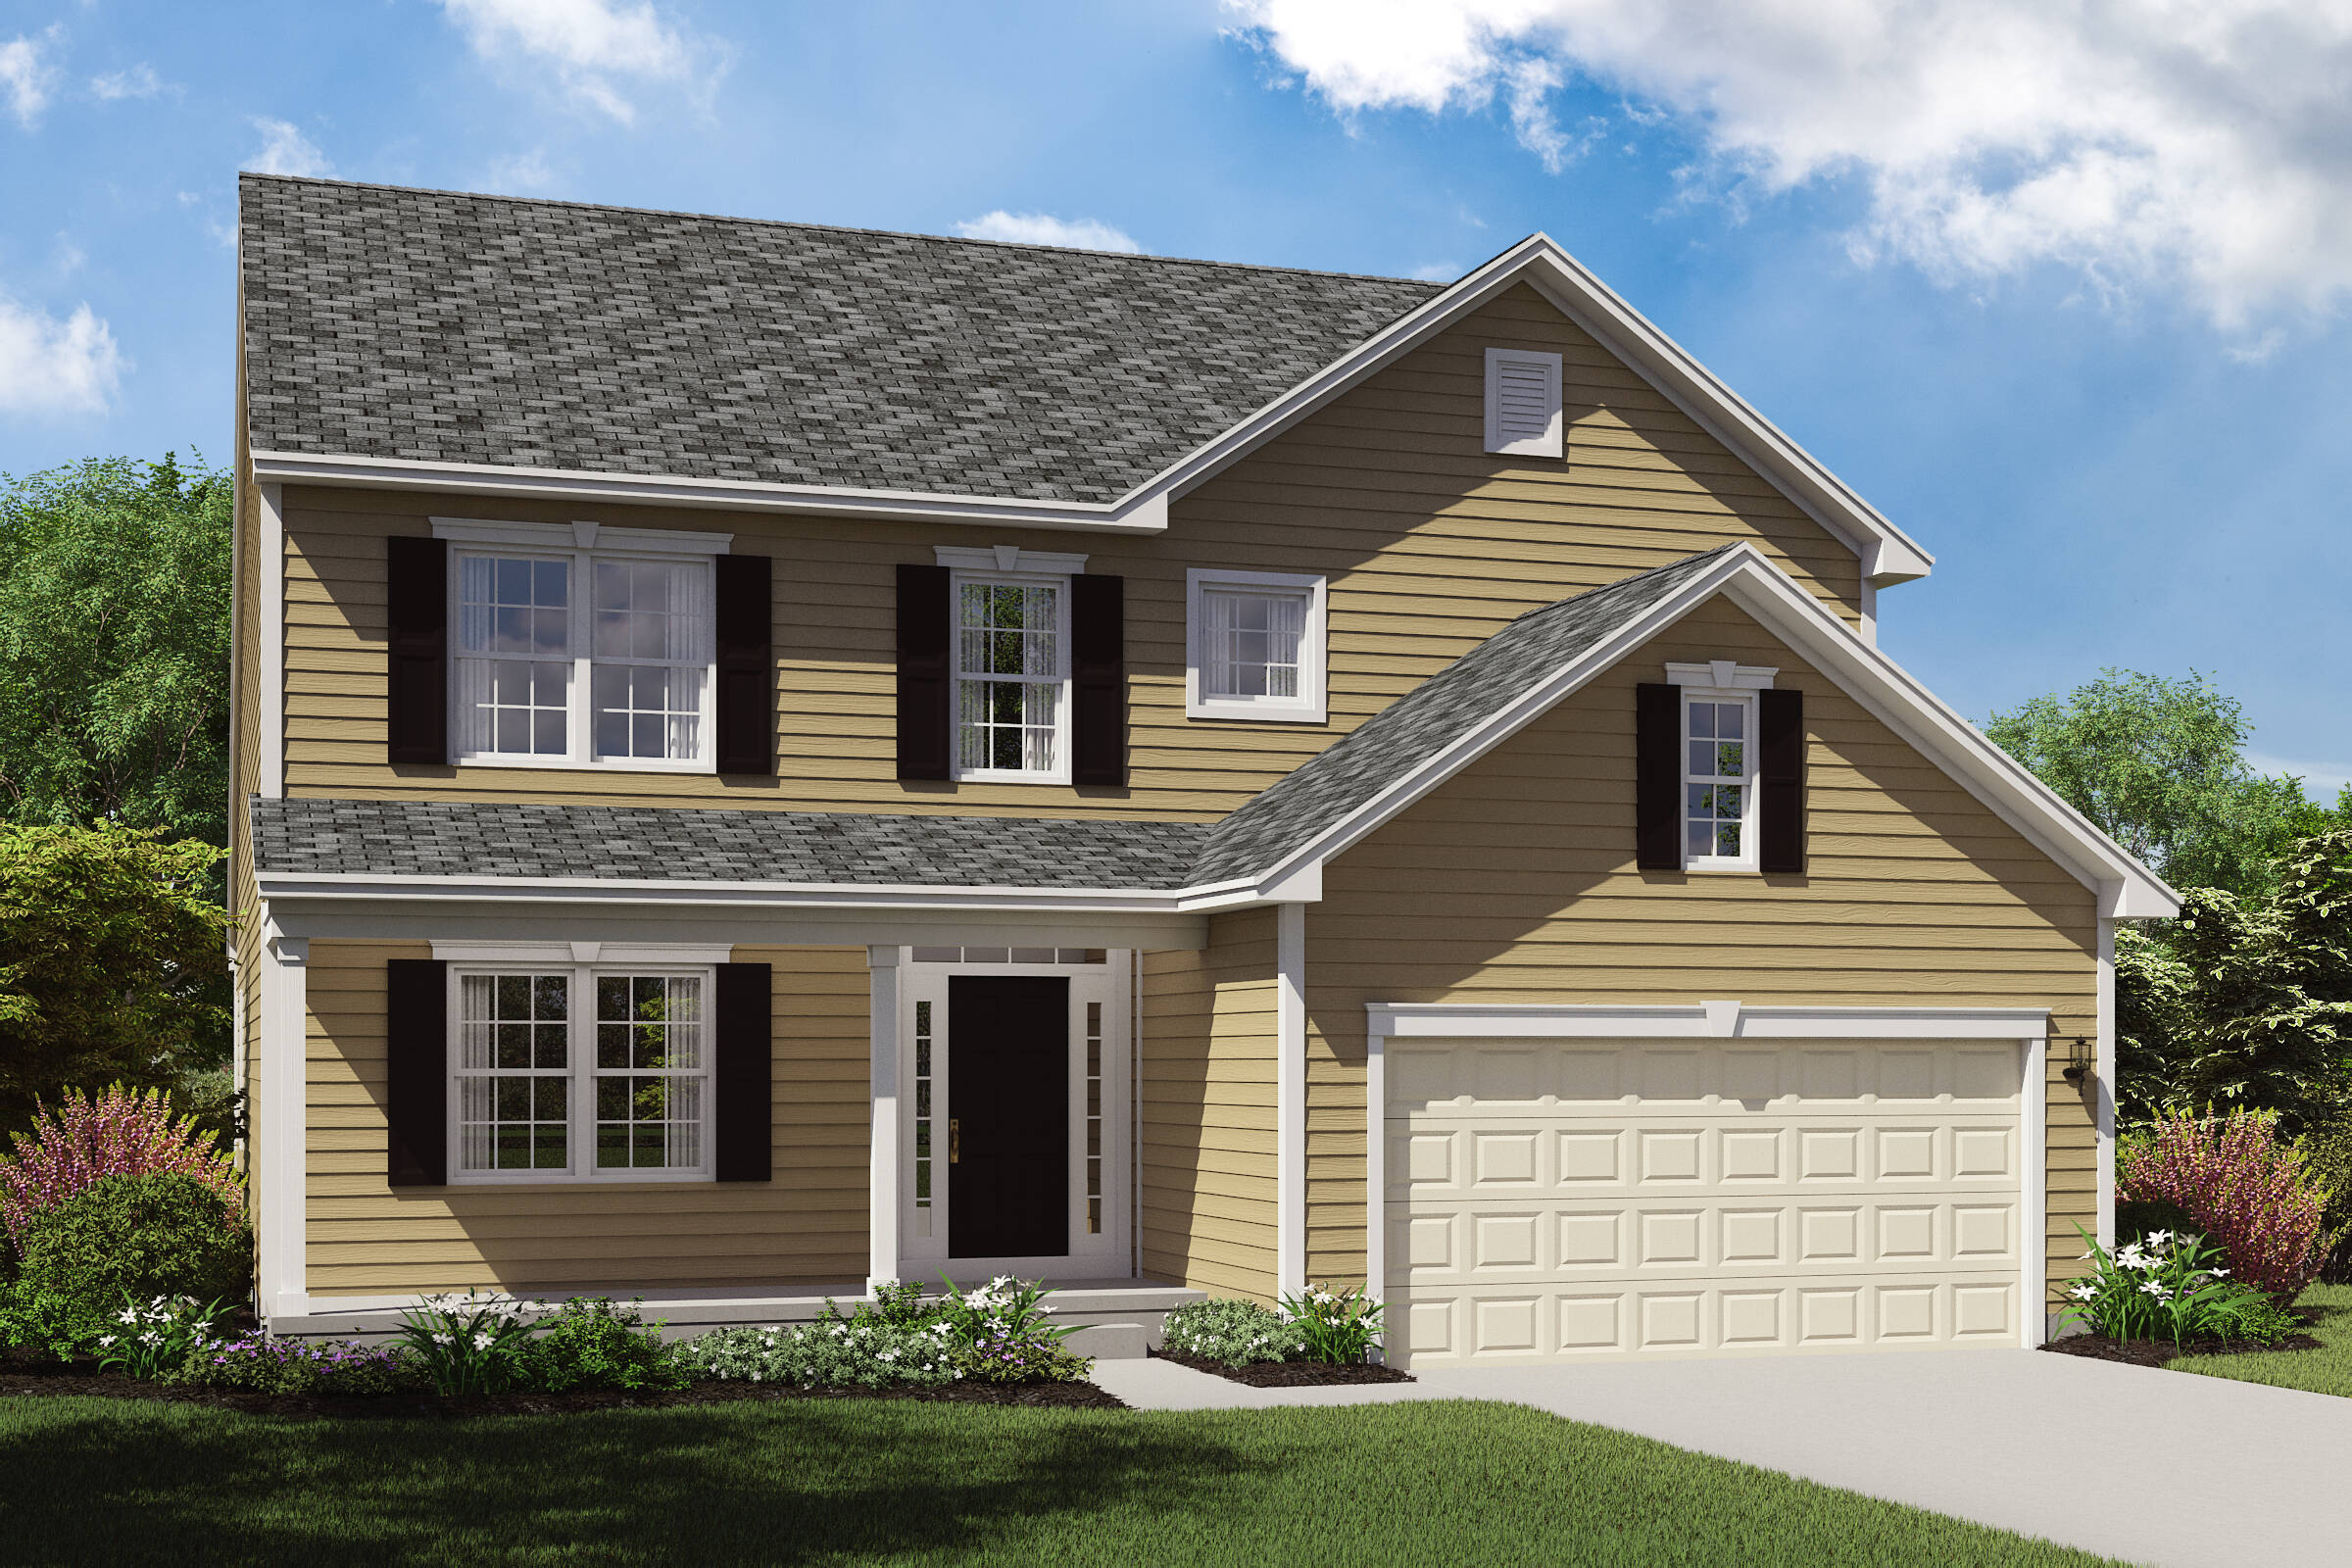 new home designs first floor owners suite oakridge c northeast ohio